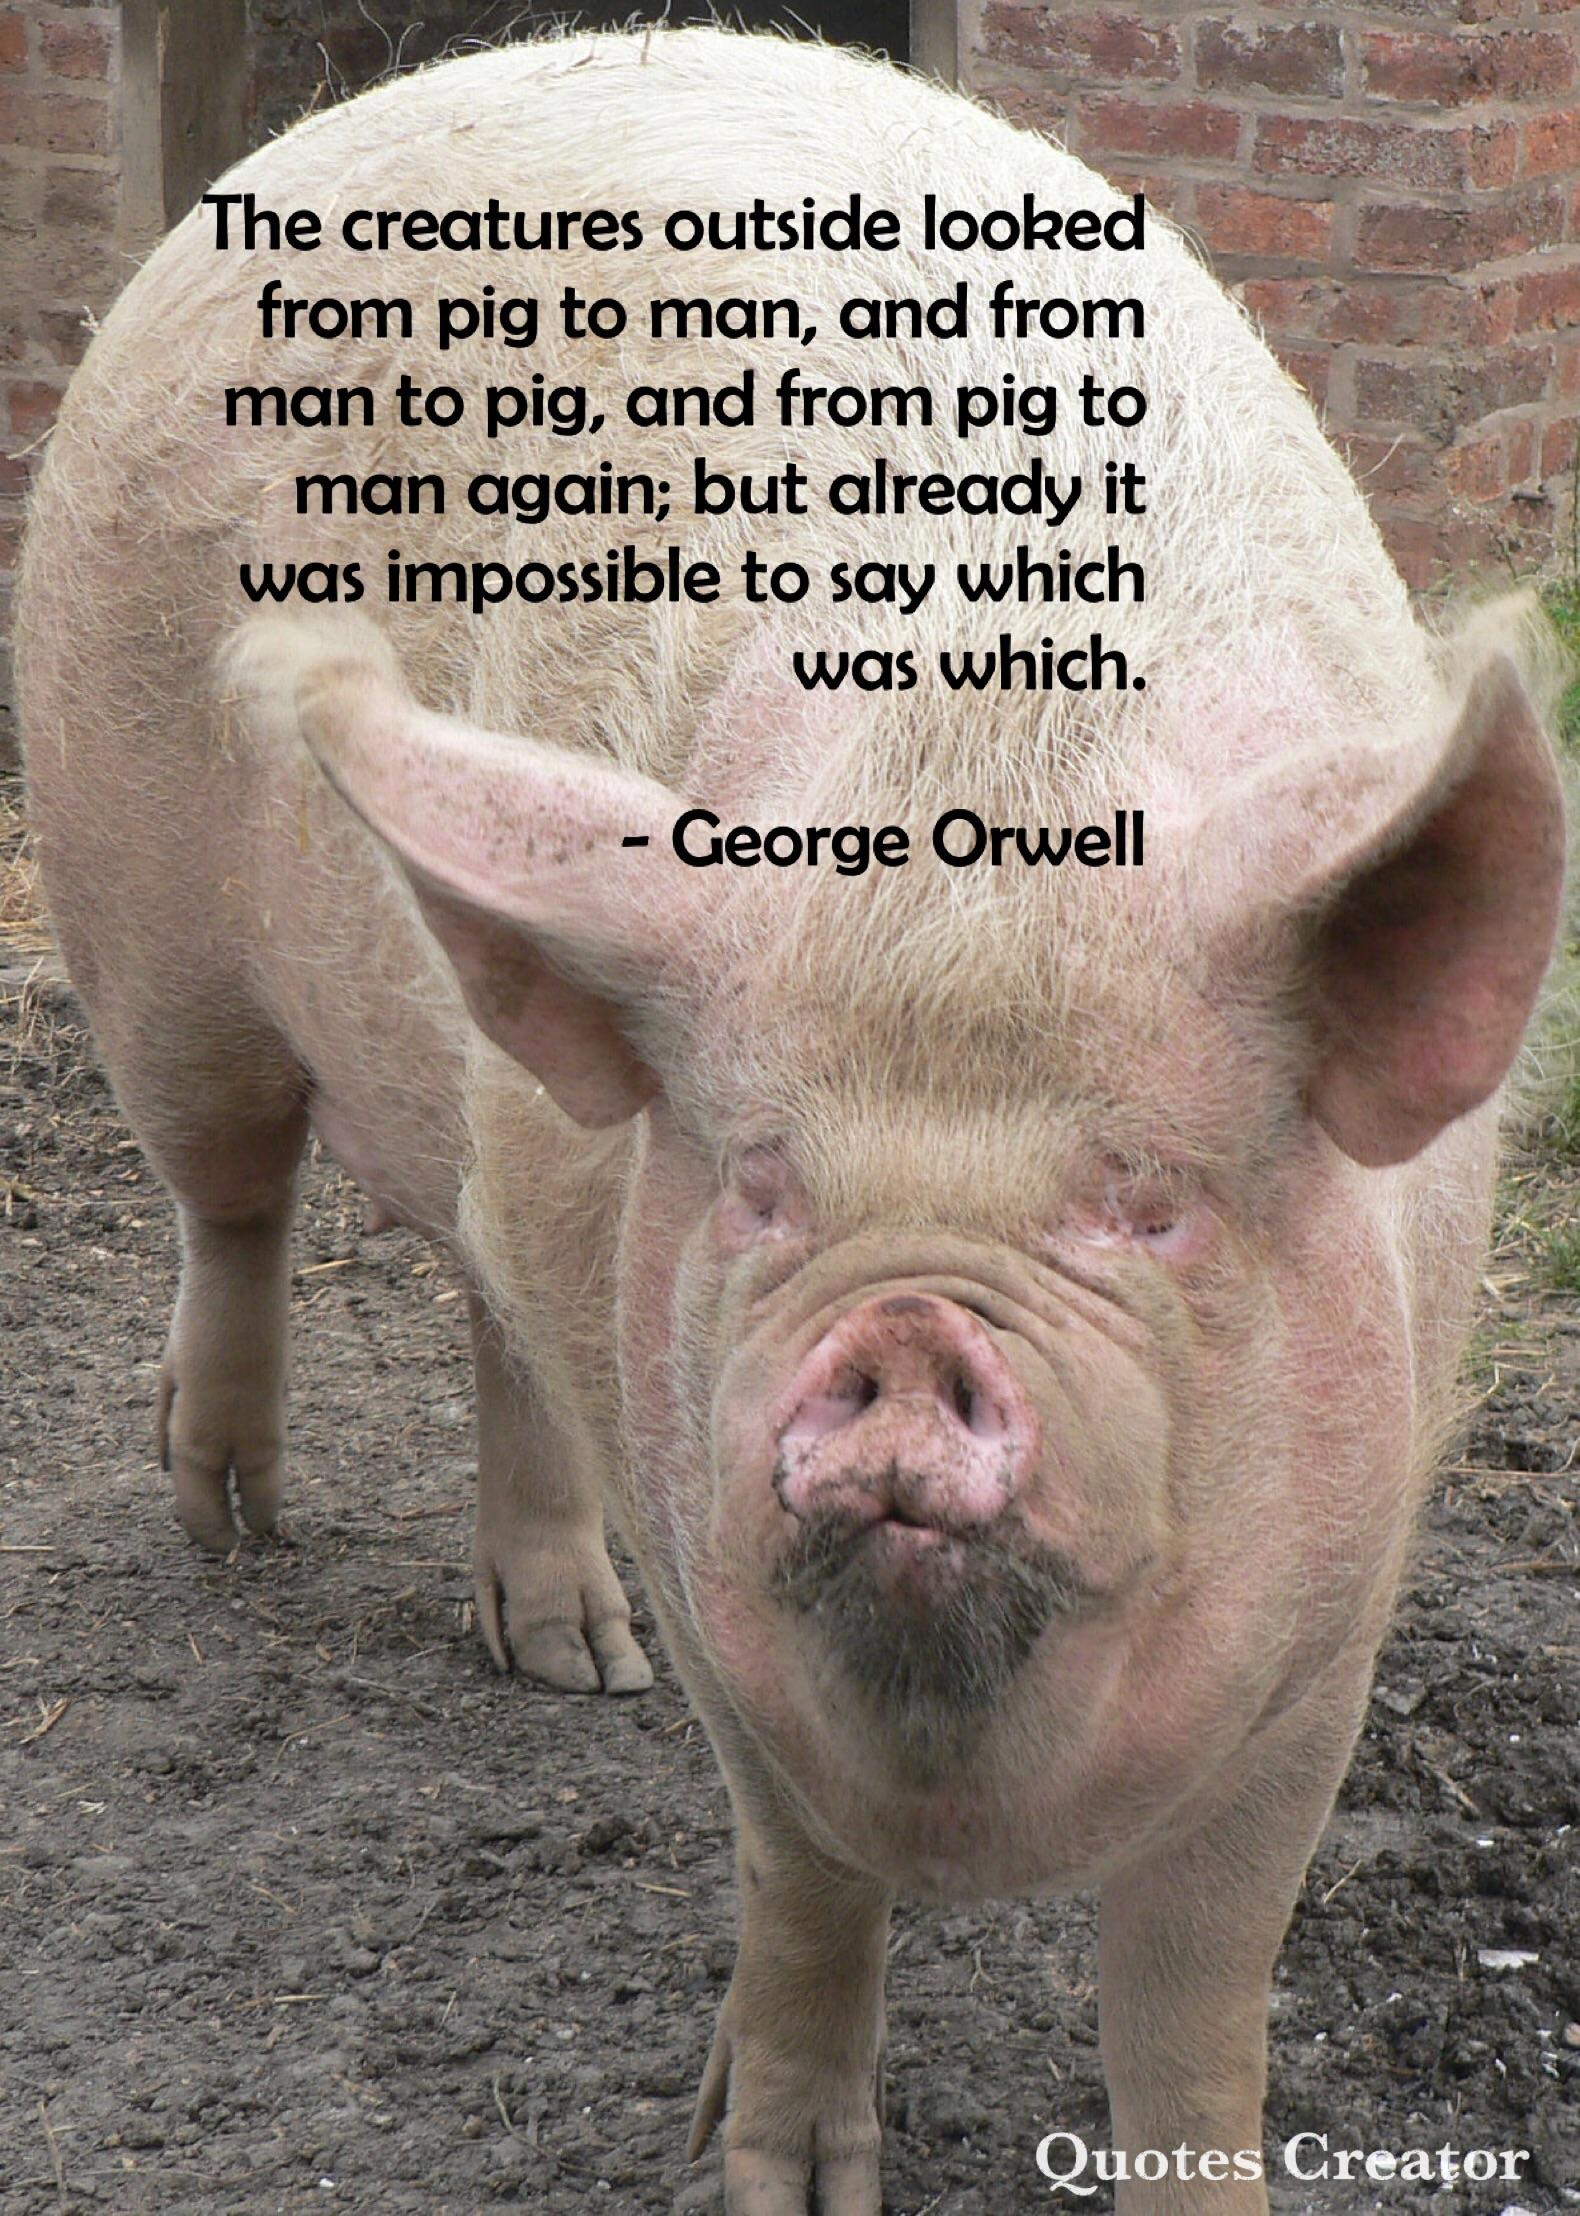 The creatures outside looked from pig to man, and from man to pig, and from pig to man again; but already it was impossible to say which was which. – George Orwell [1245×1750]